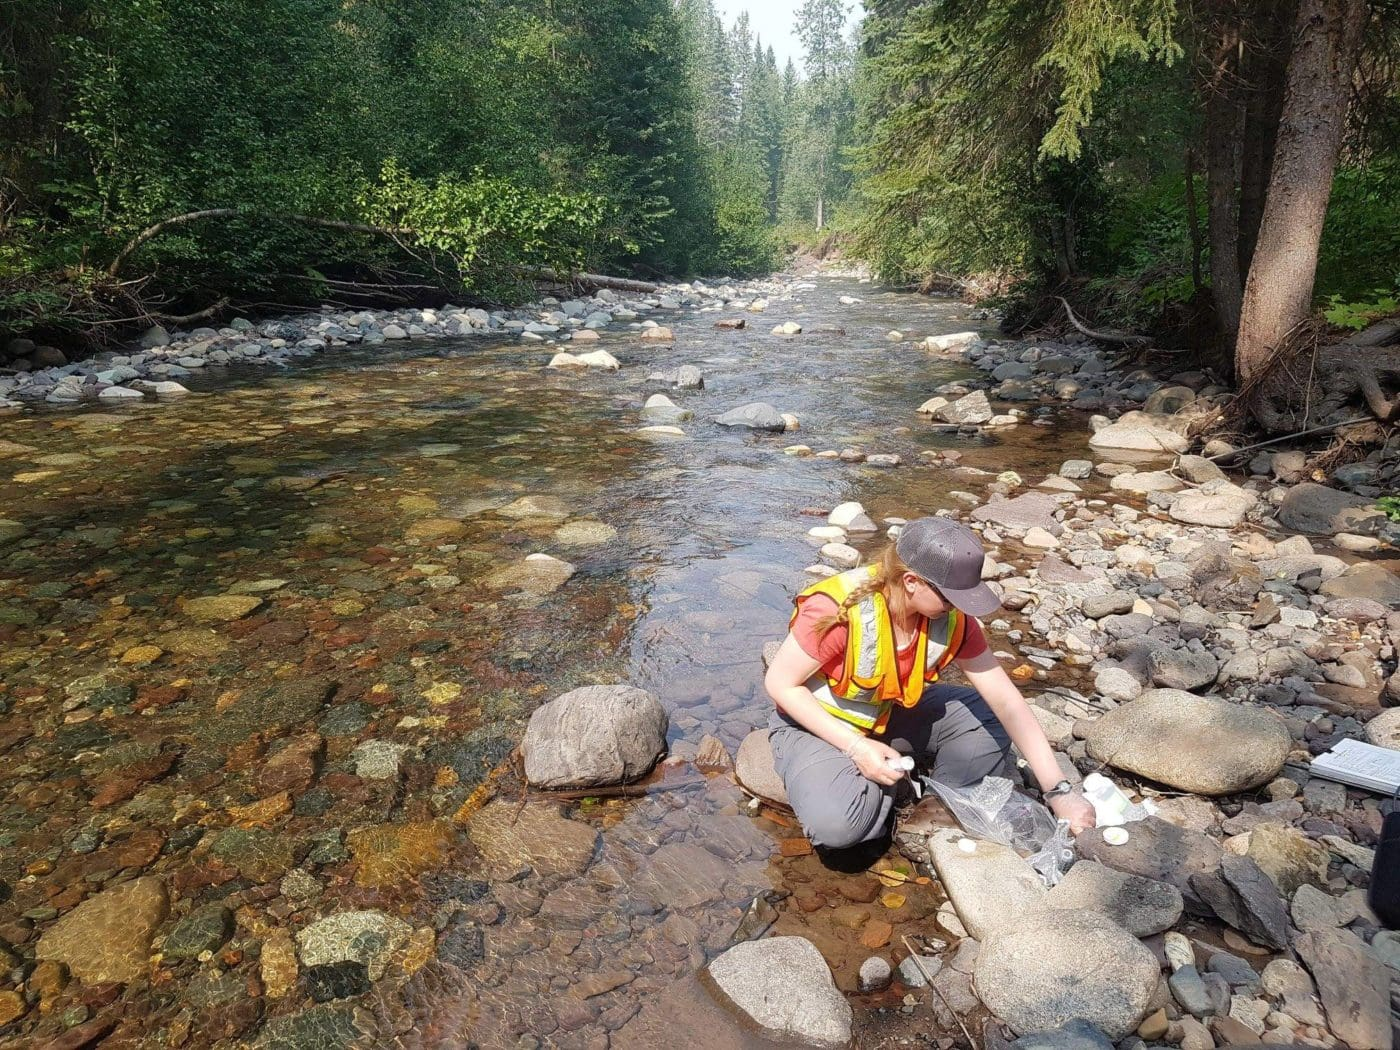 9 things you need to know about the proposed open-pit coal mine near Smithers, B.C.